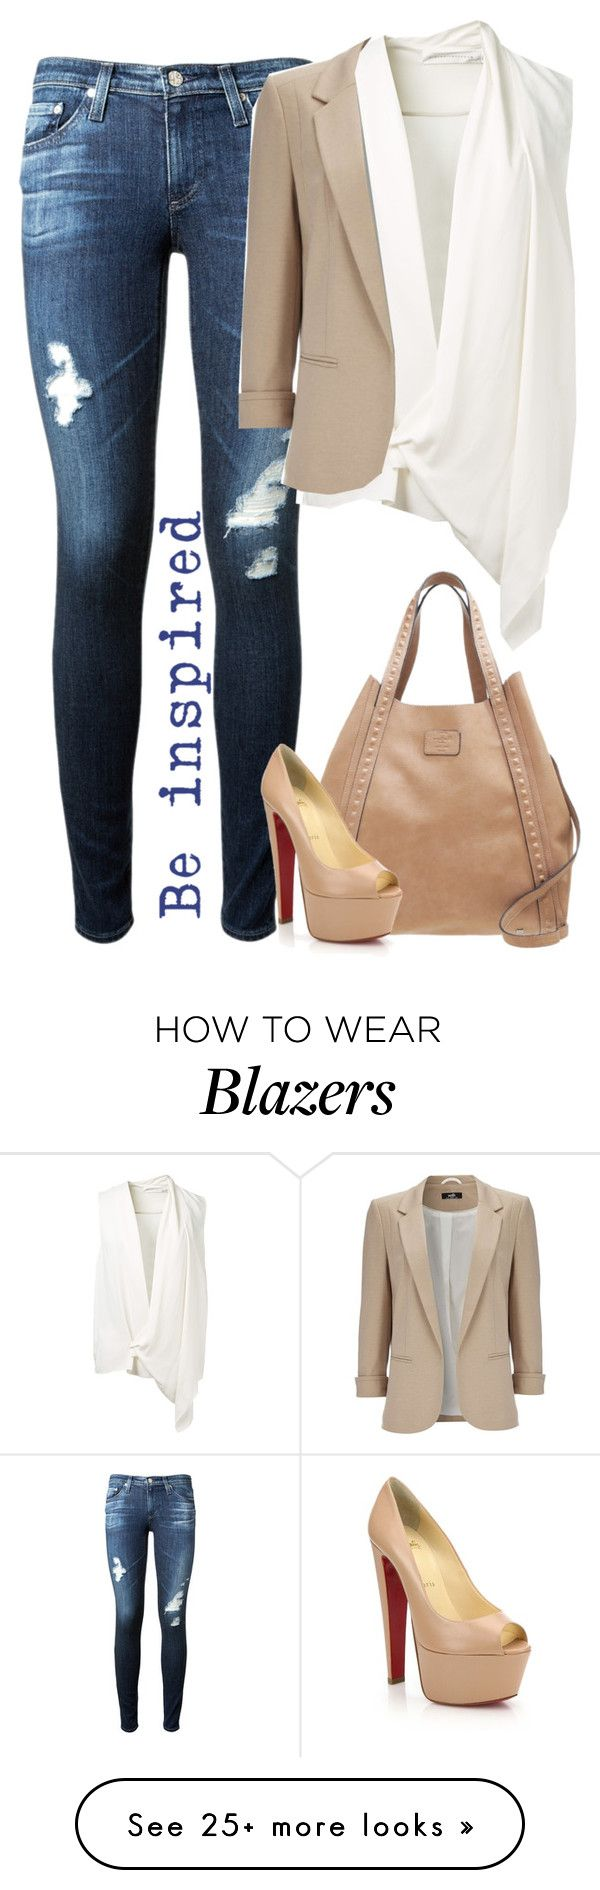 """""""Casual Outfit"""" by cloudybooks on Polyvore featuring AG Adriano Goldschmied, Victoria Beckham, Wallis, Pepe Jeans London and Christian Louboutin"""